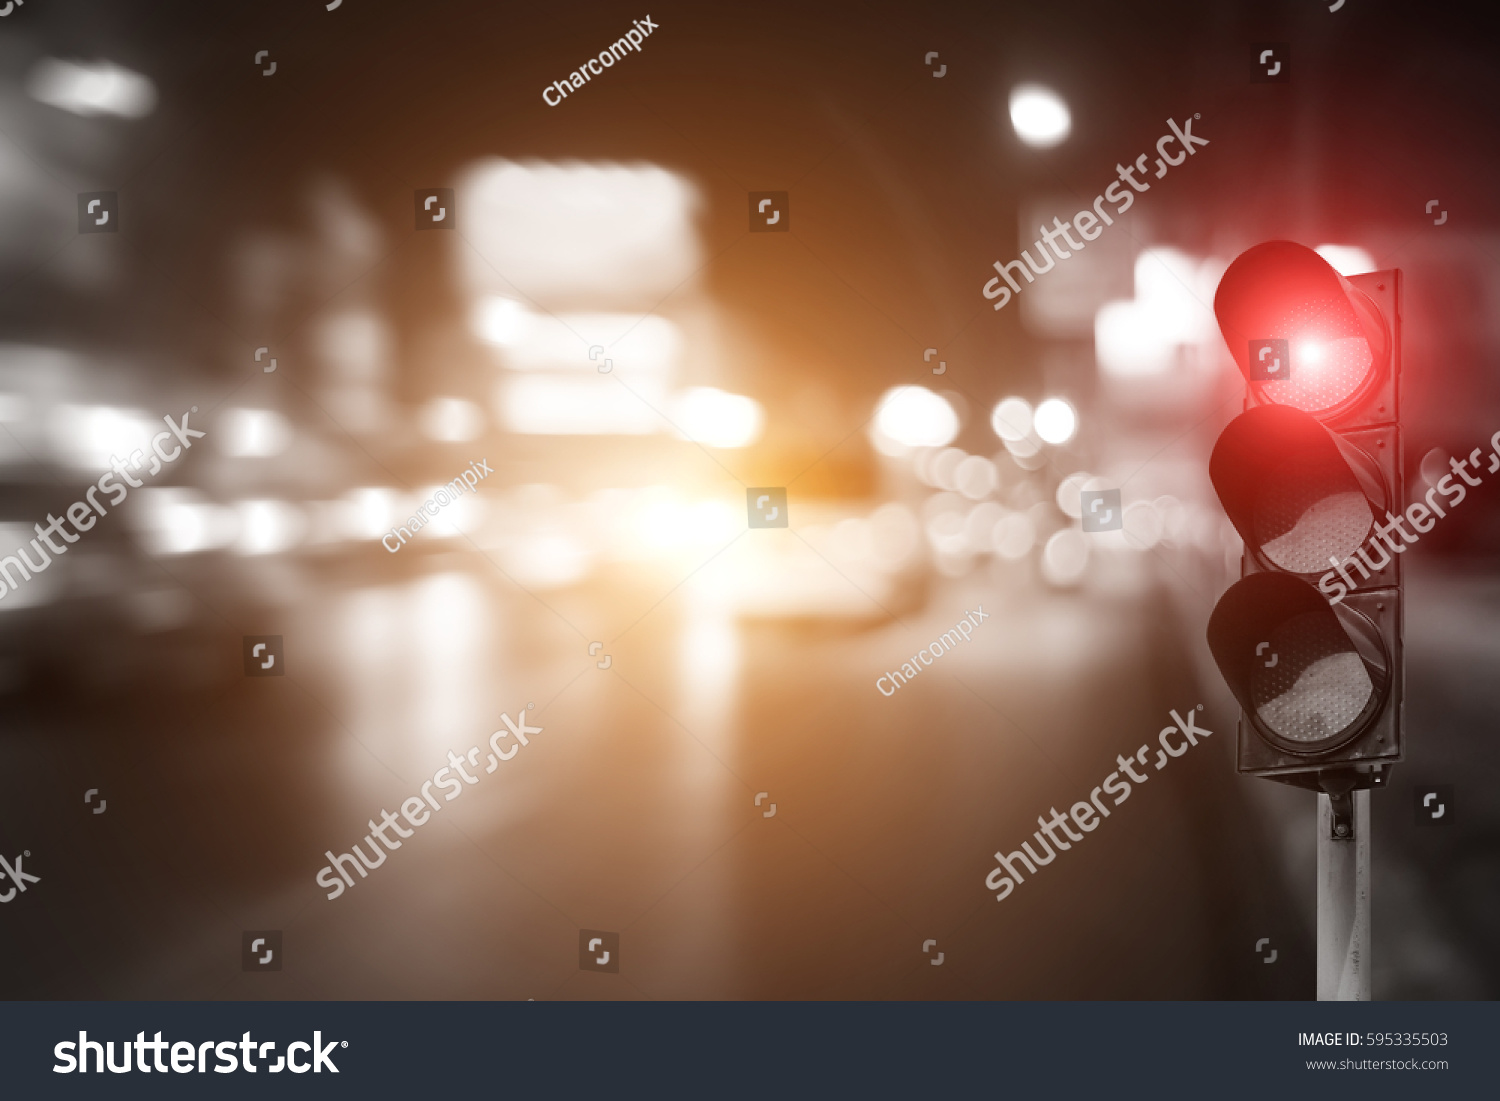 Red Traffic Light On Road Night Stock Photo 595335503 - Shutterstock for Traffic Light On Road At Night  45gtk